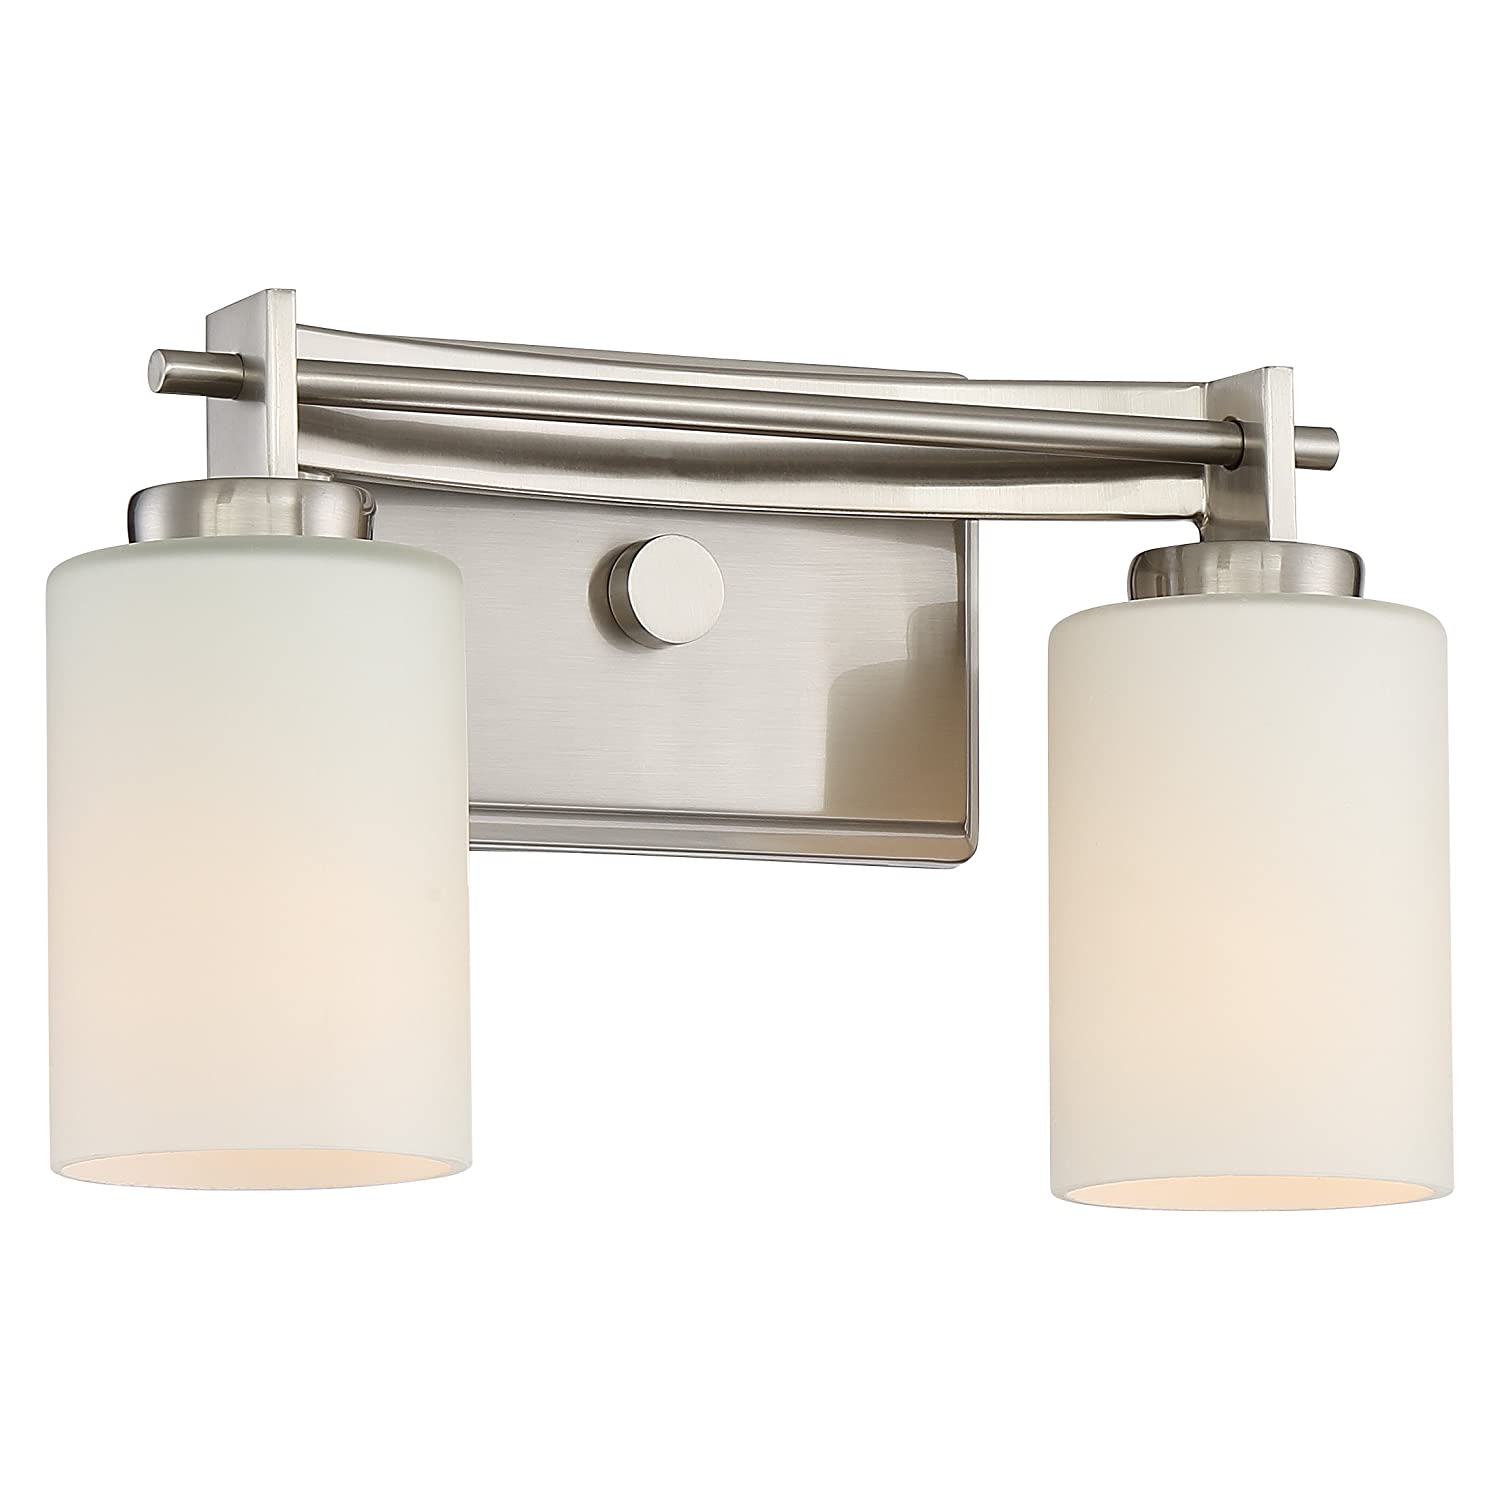 Quoizel TY8602BN Taylor Bath Vanity Wall Lighting, Lights 2-Light, 200 Watts, Brushed Nickel 8 H x 13 W